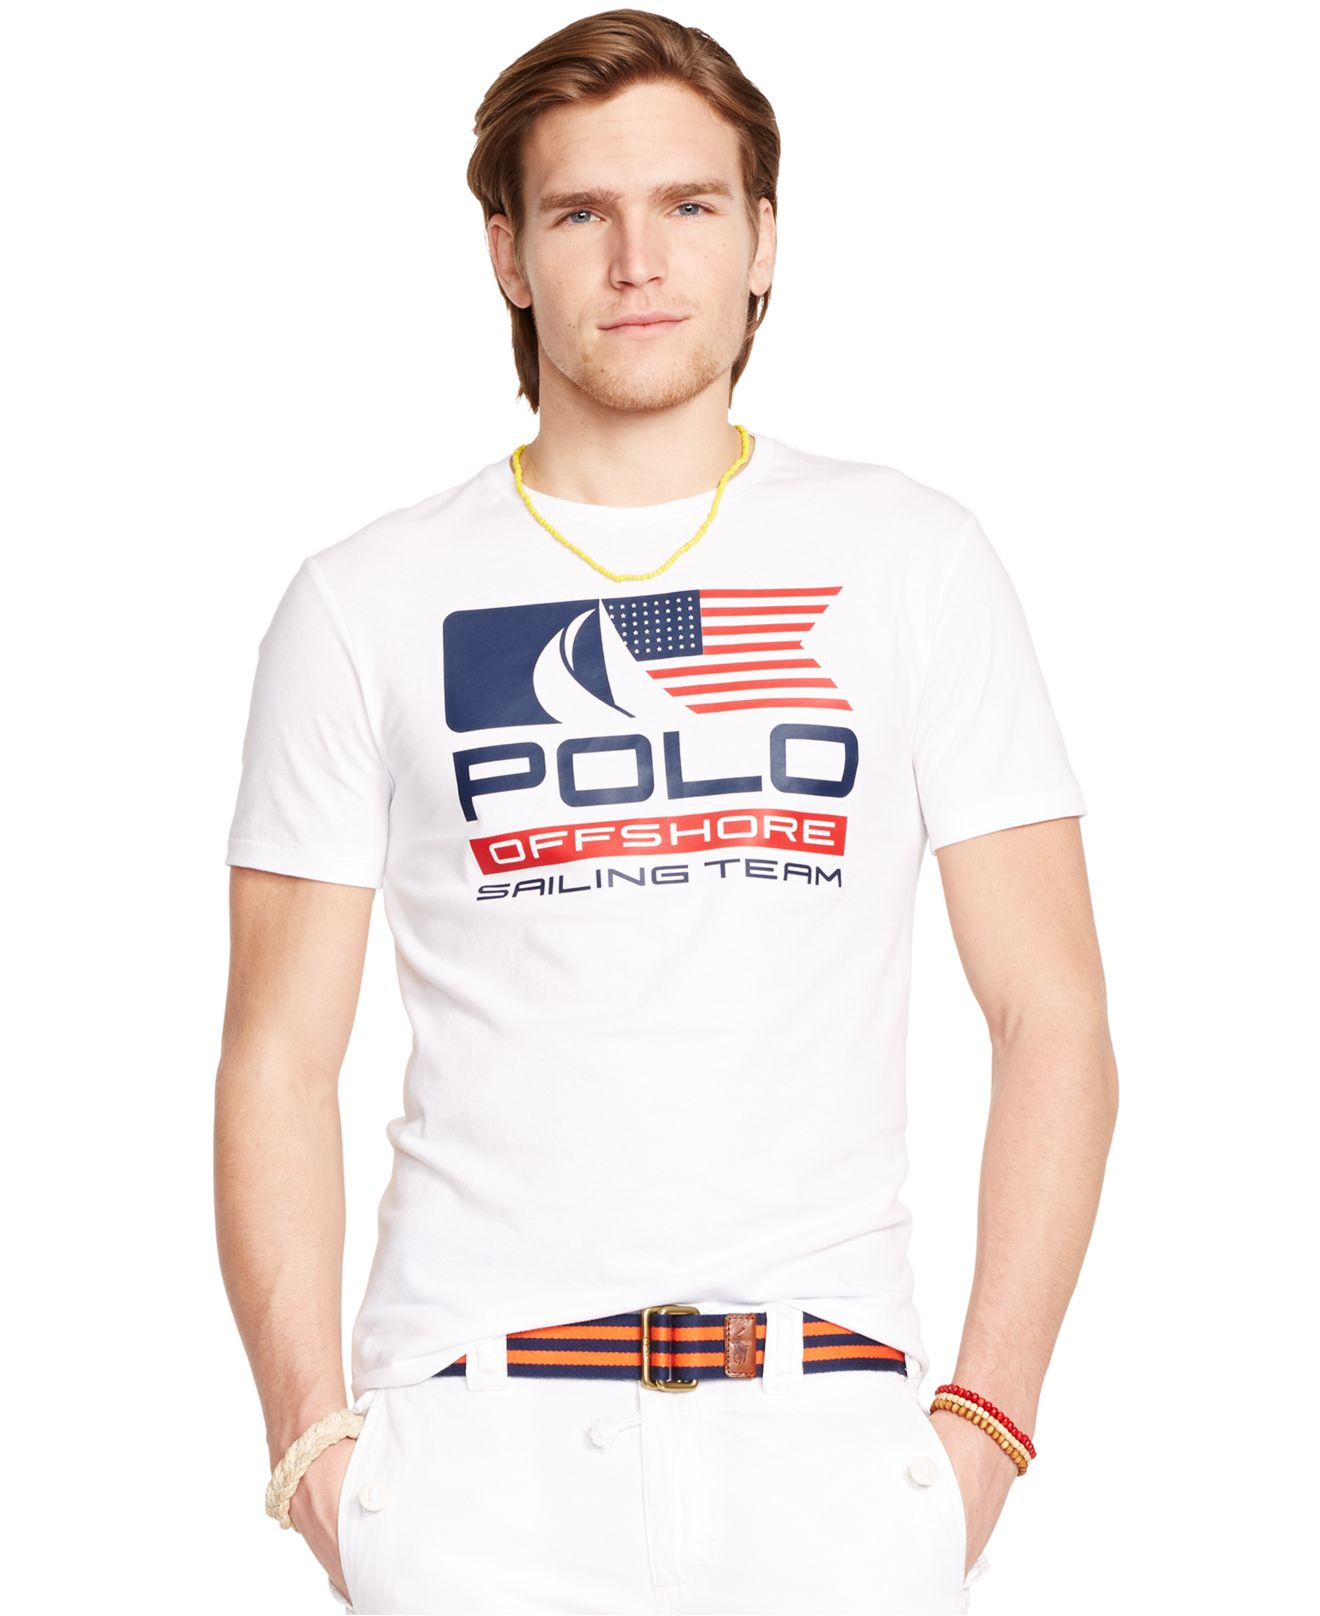 polo ralph lauren flag graphic t shirt in white for men lyst. Black Bedroom Furniture Sets. Home Design Ideas